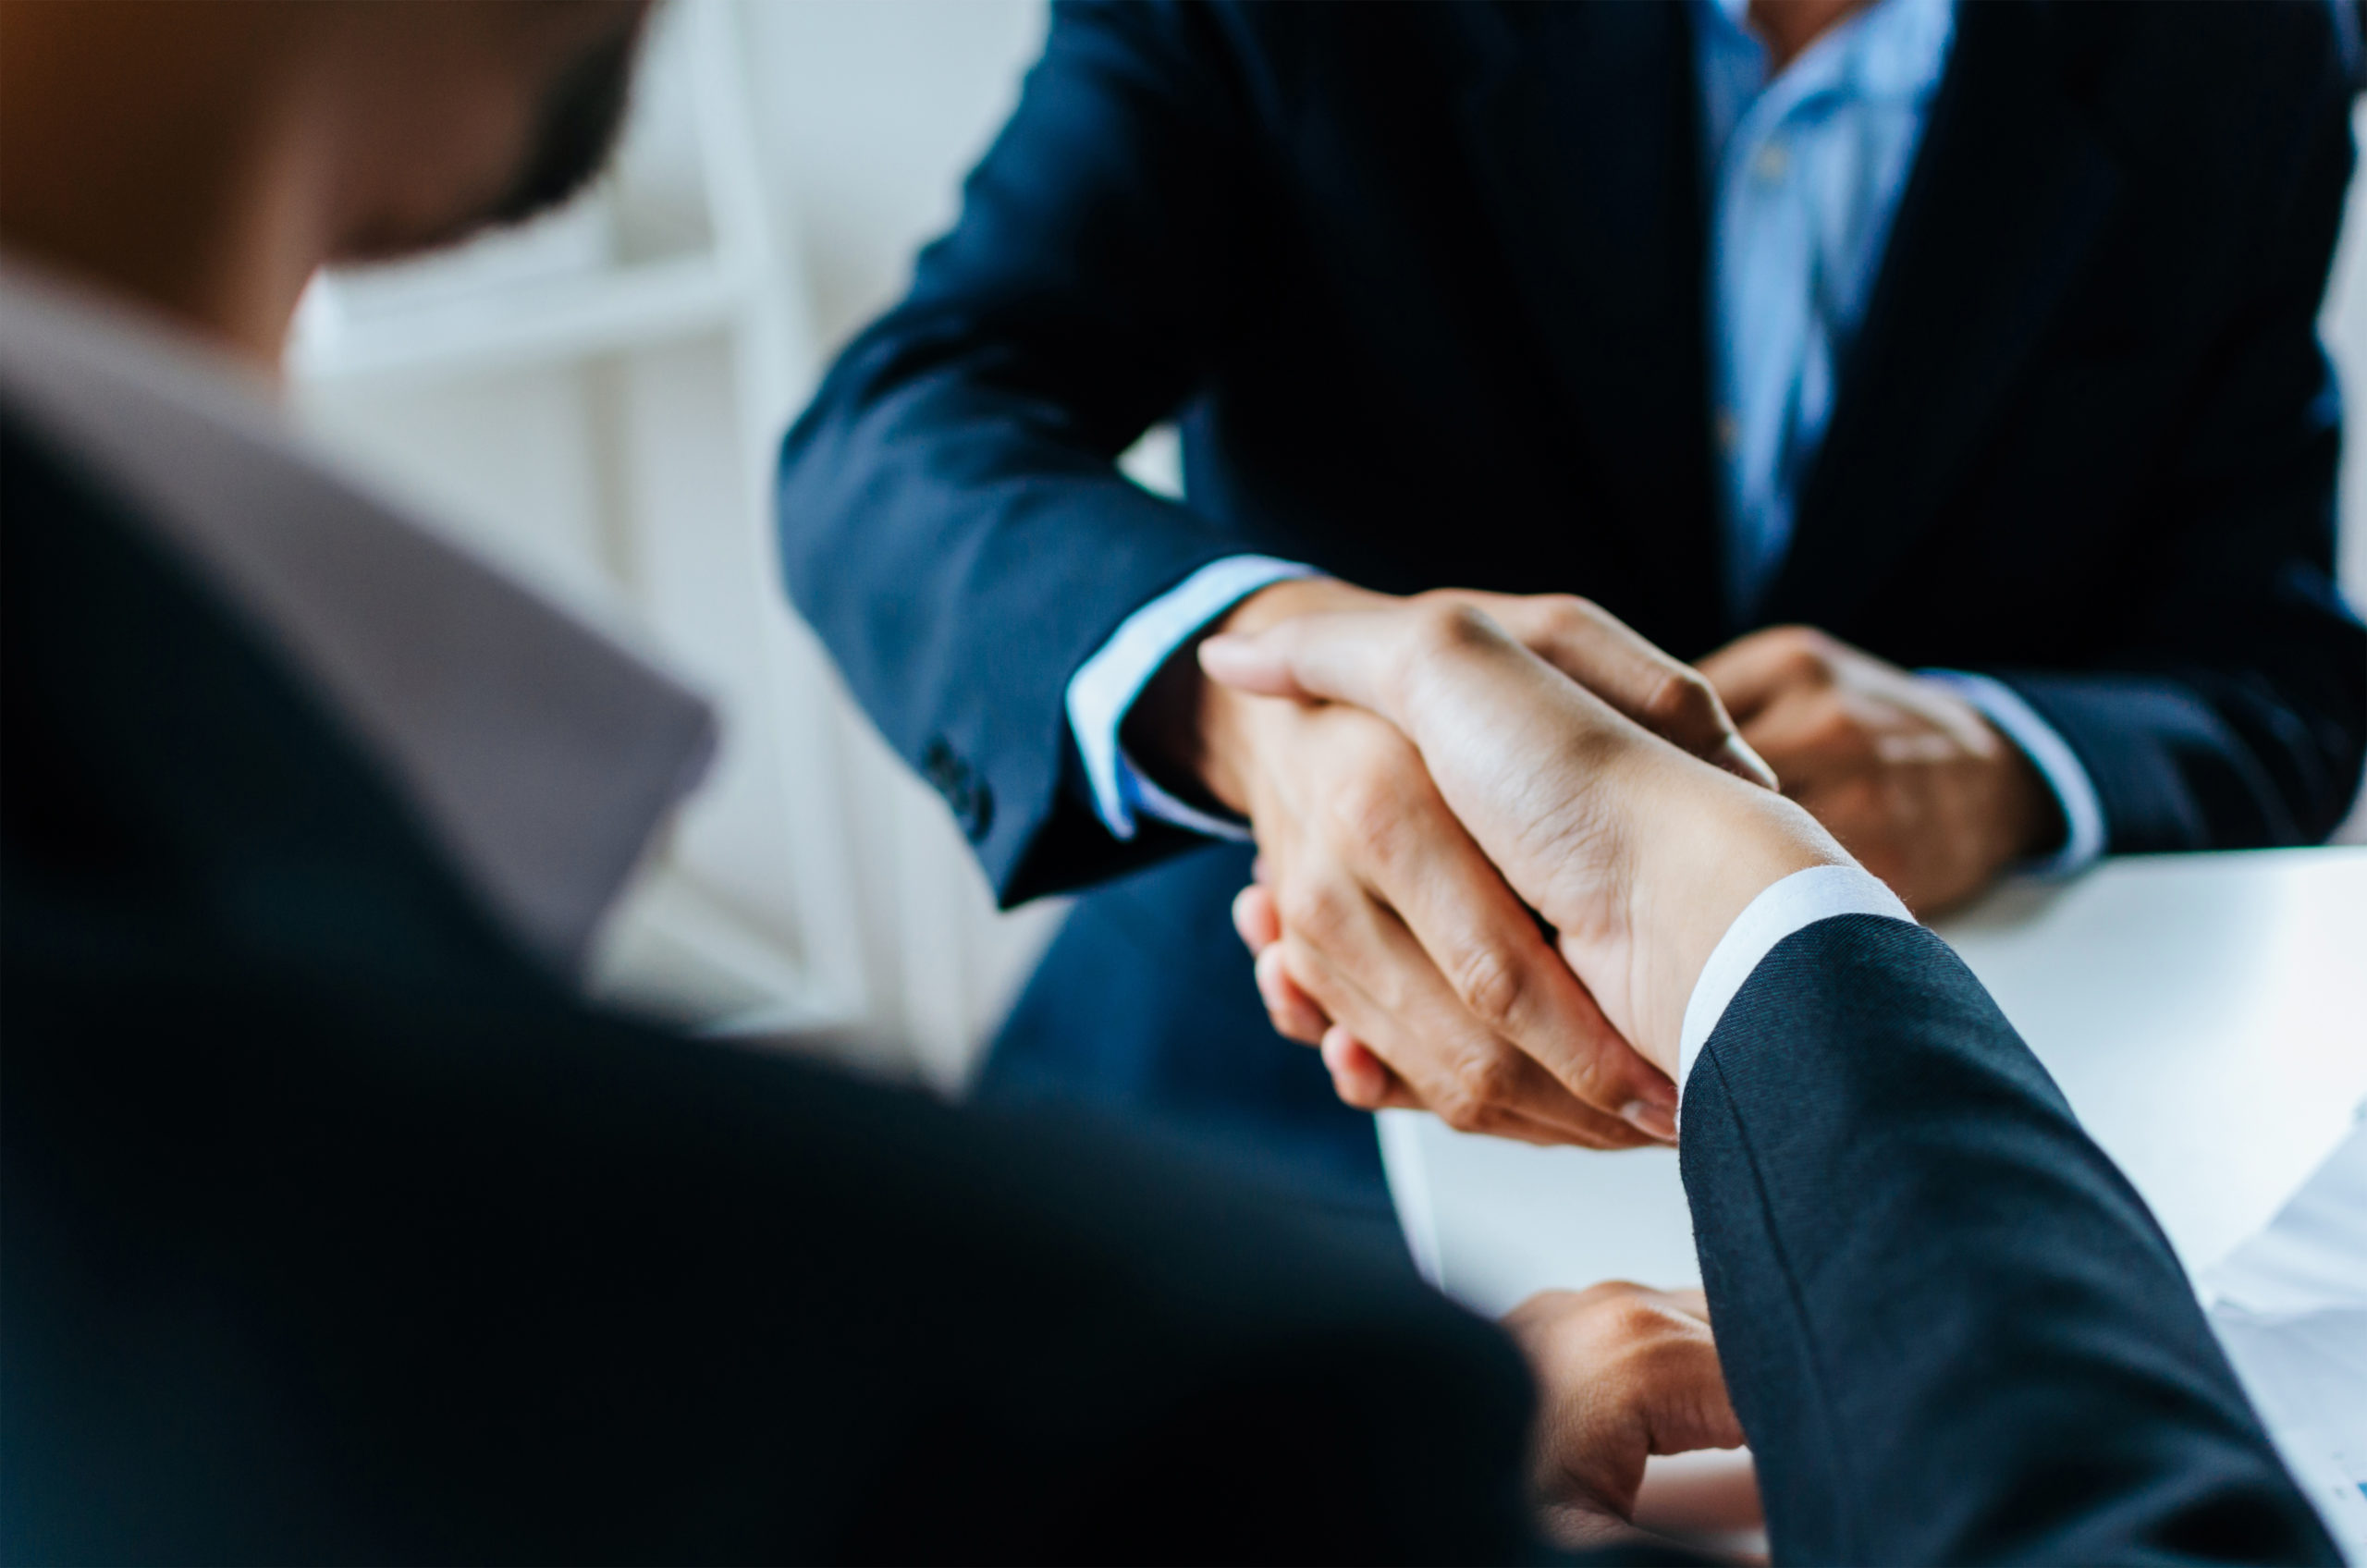 Startup business lawyer shaking hands with client